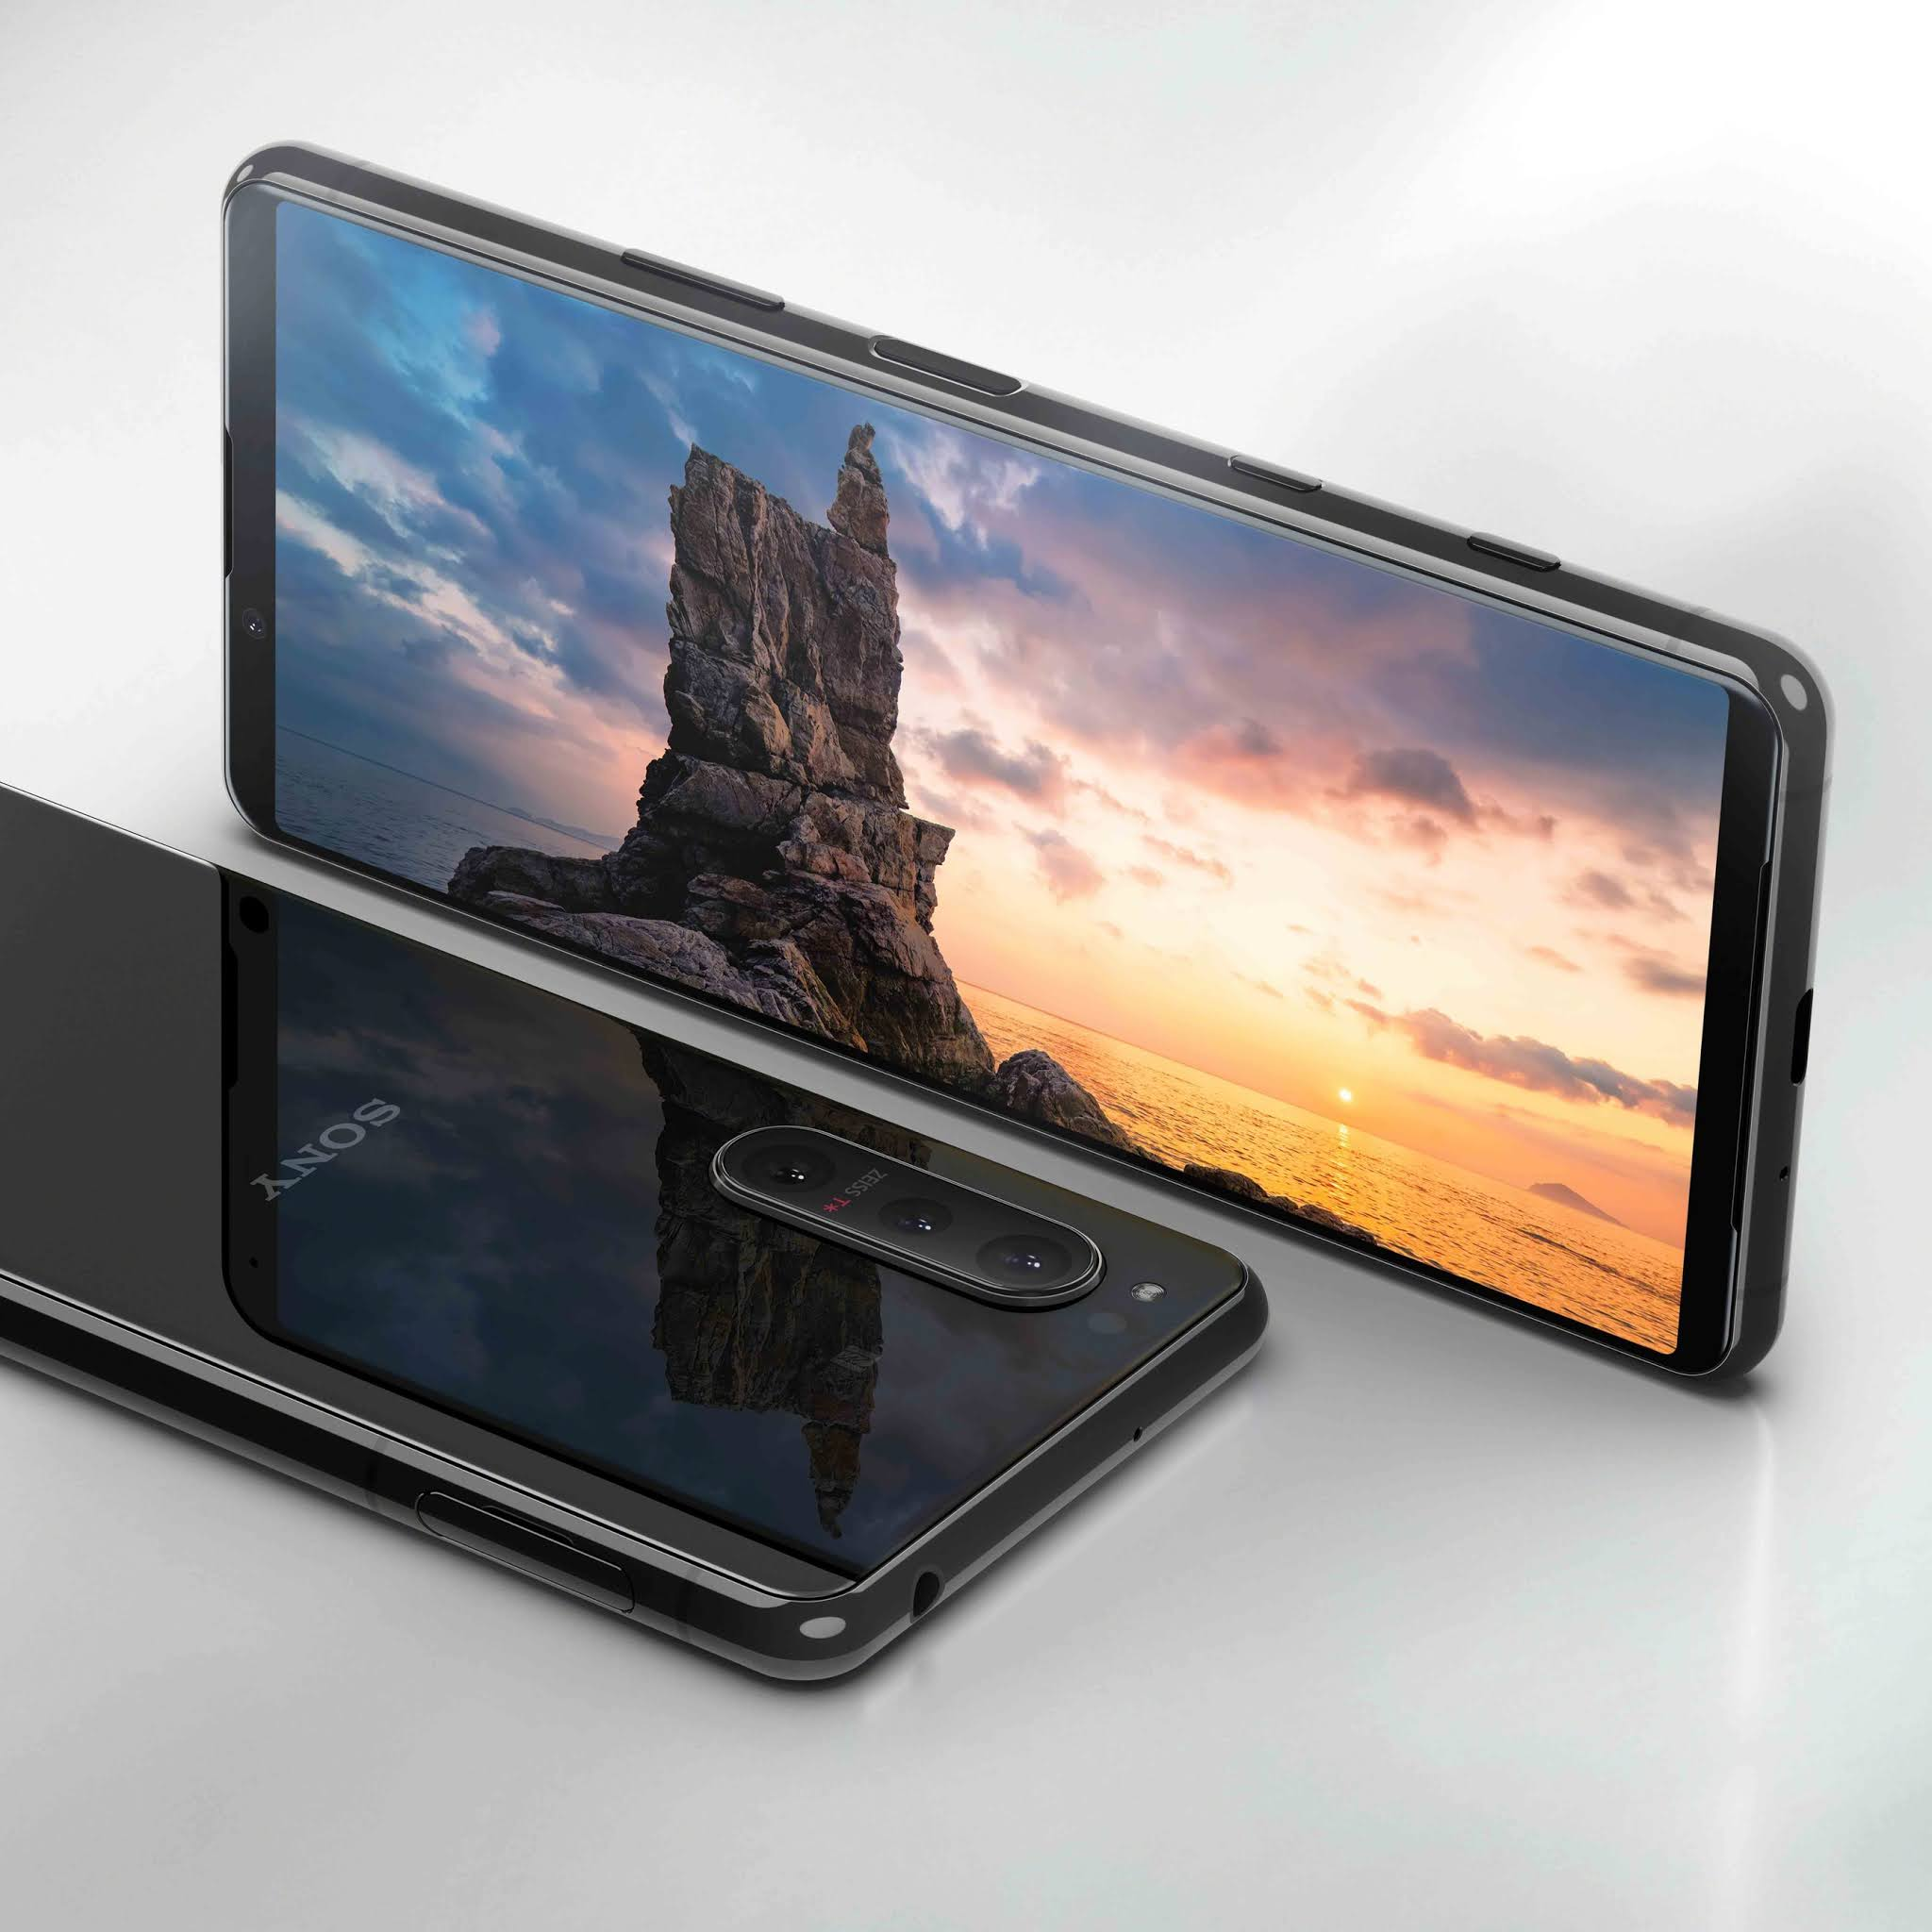 Introducing Xperia 5 II - a Powerful, Compact Smartphone that Takes Gaming, Entertainment and Cinematography to the Next Level